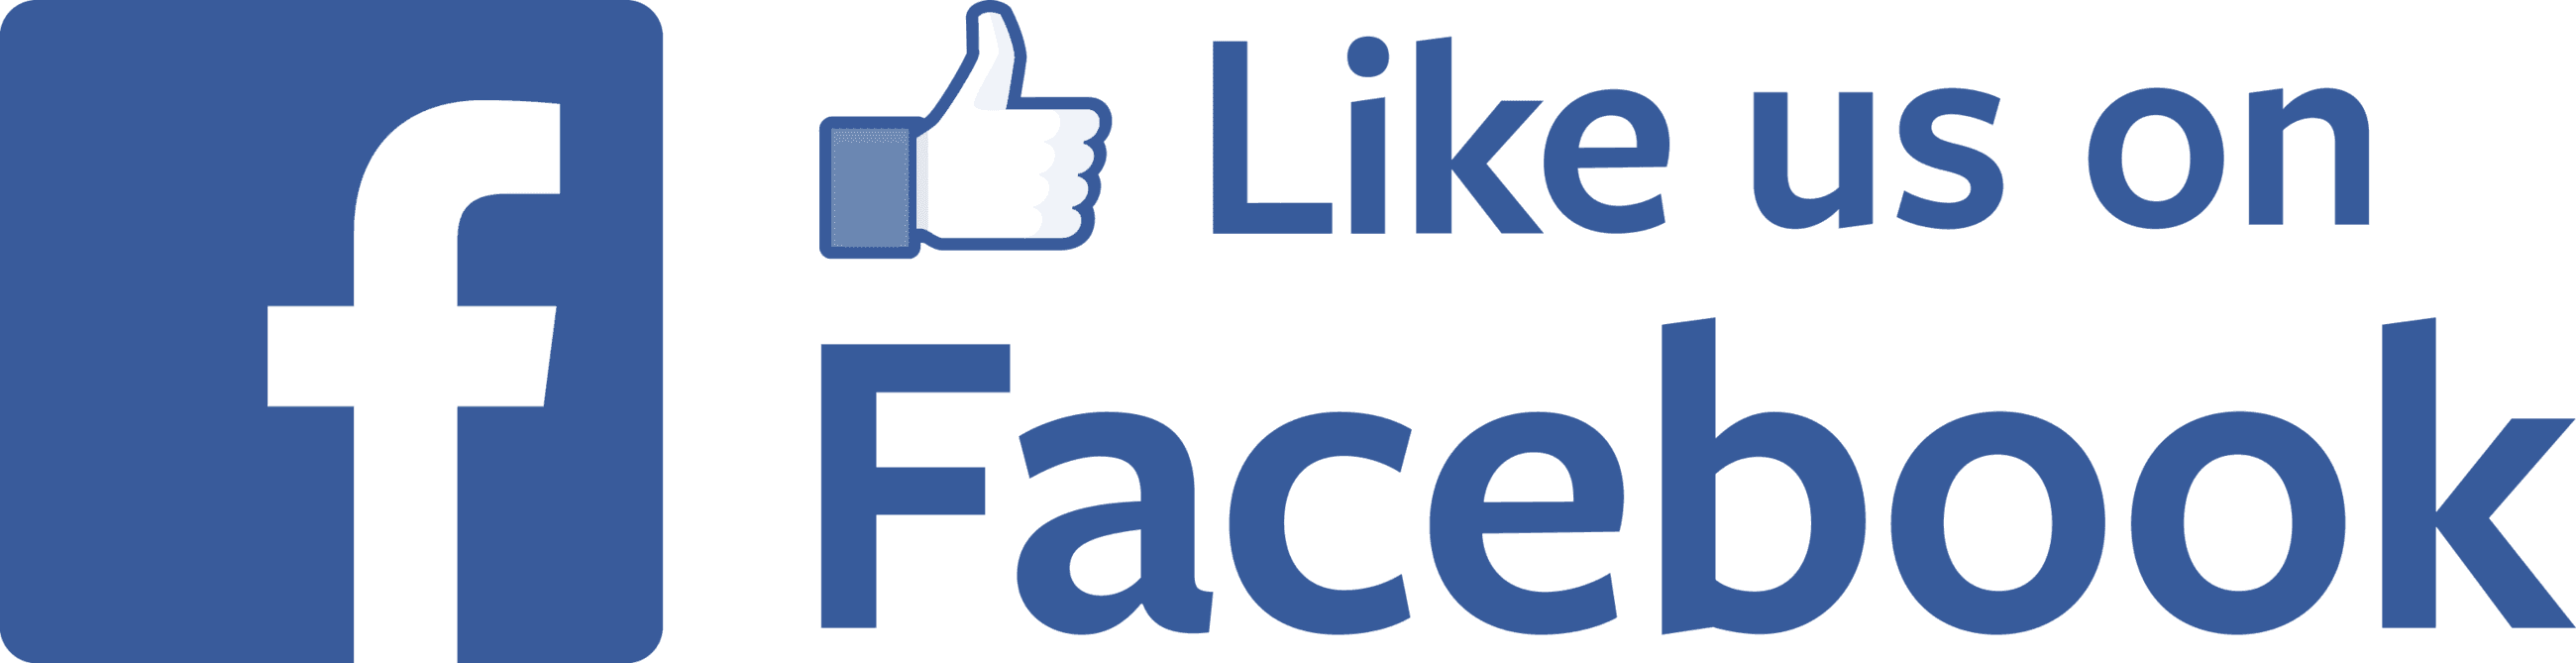 Like us FB button